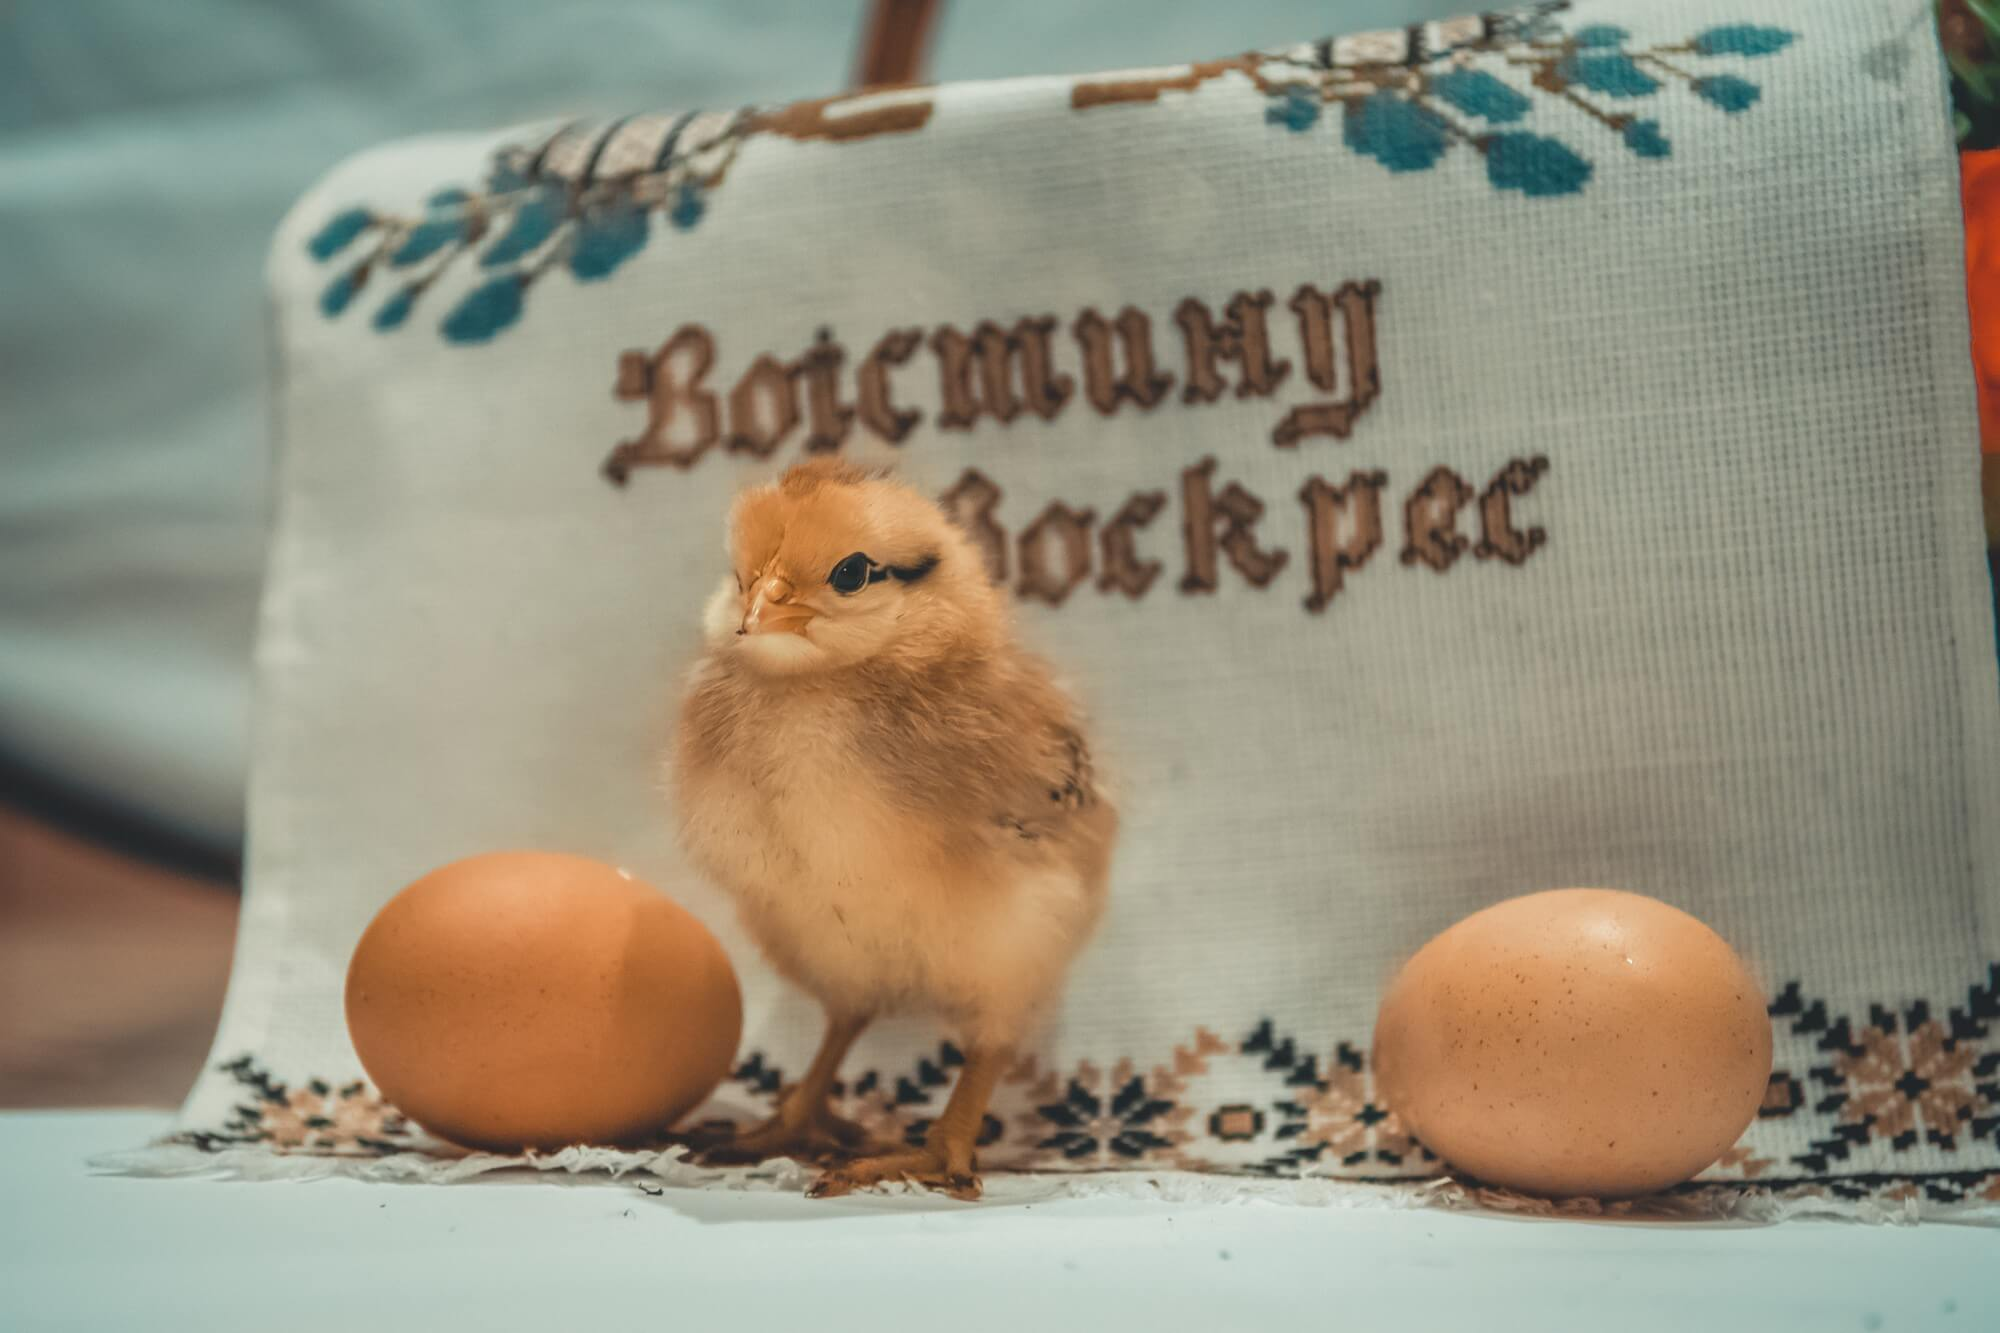 Brown baby chick in front of feed sack with Cyrillic writing surrounded by brown eggs